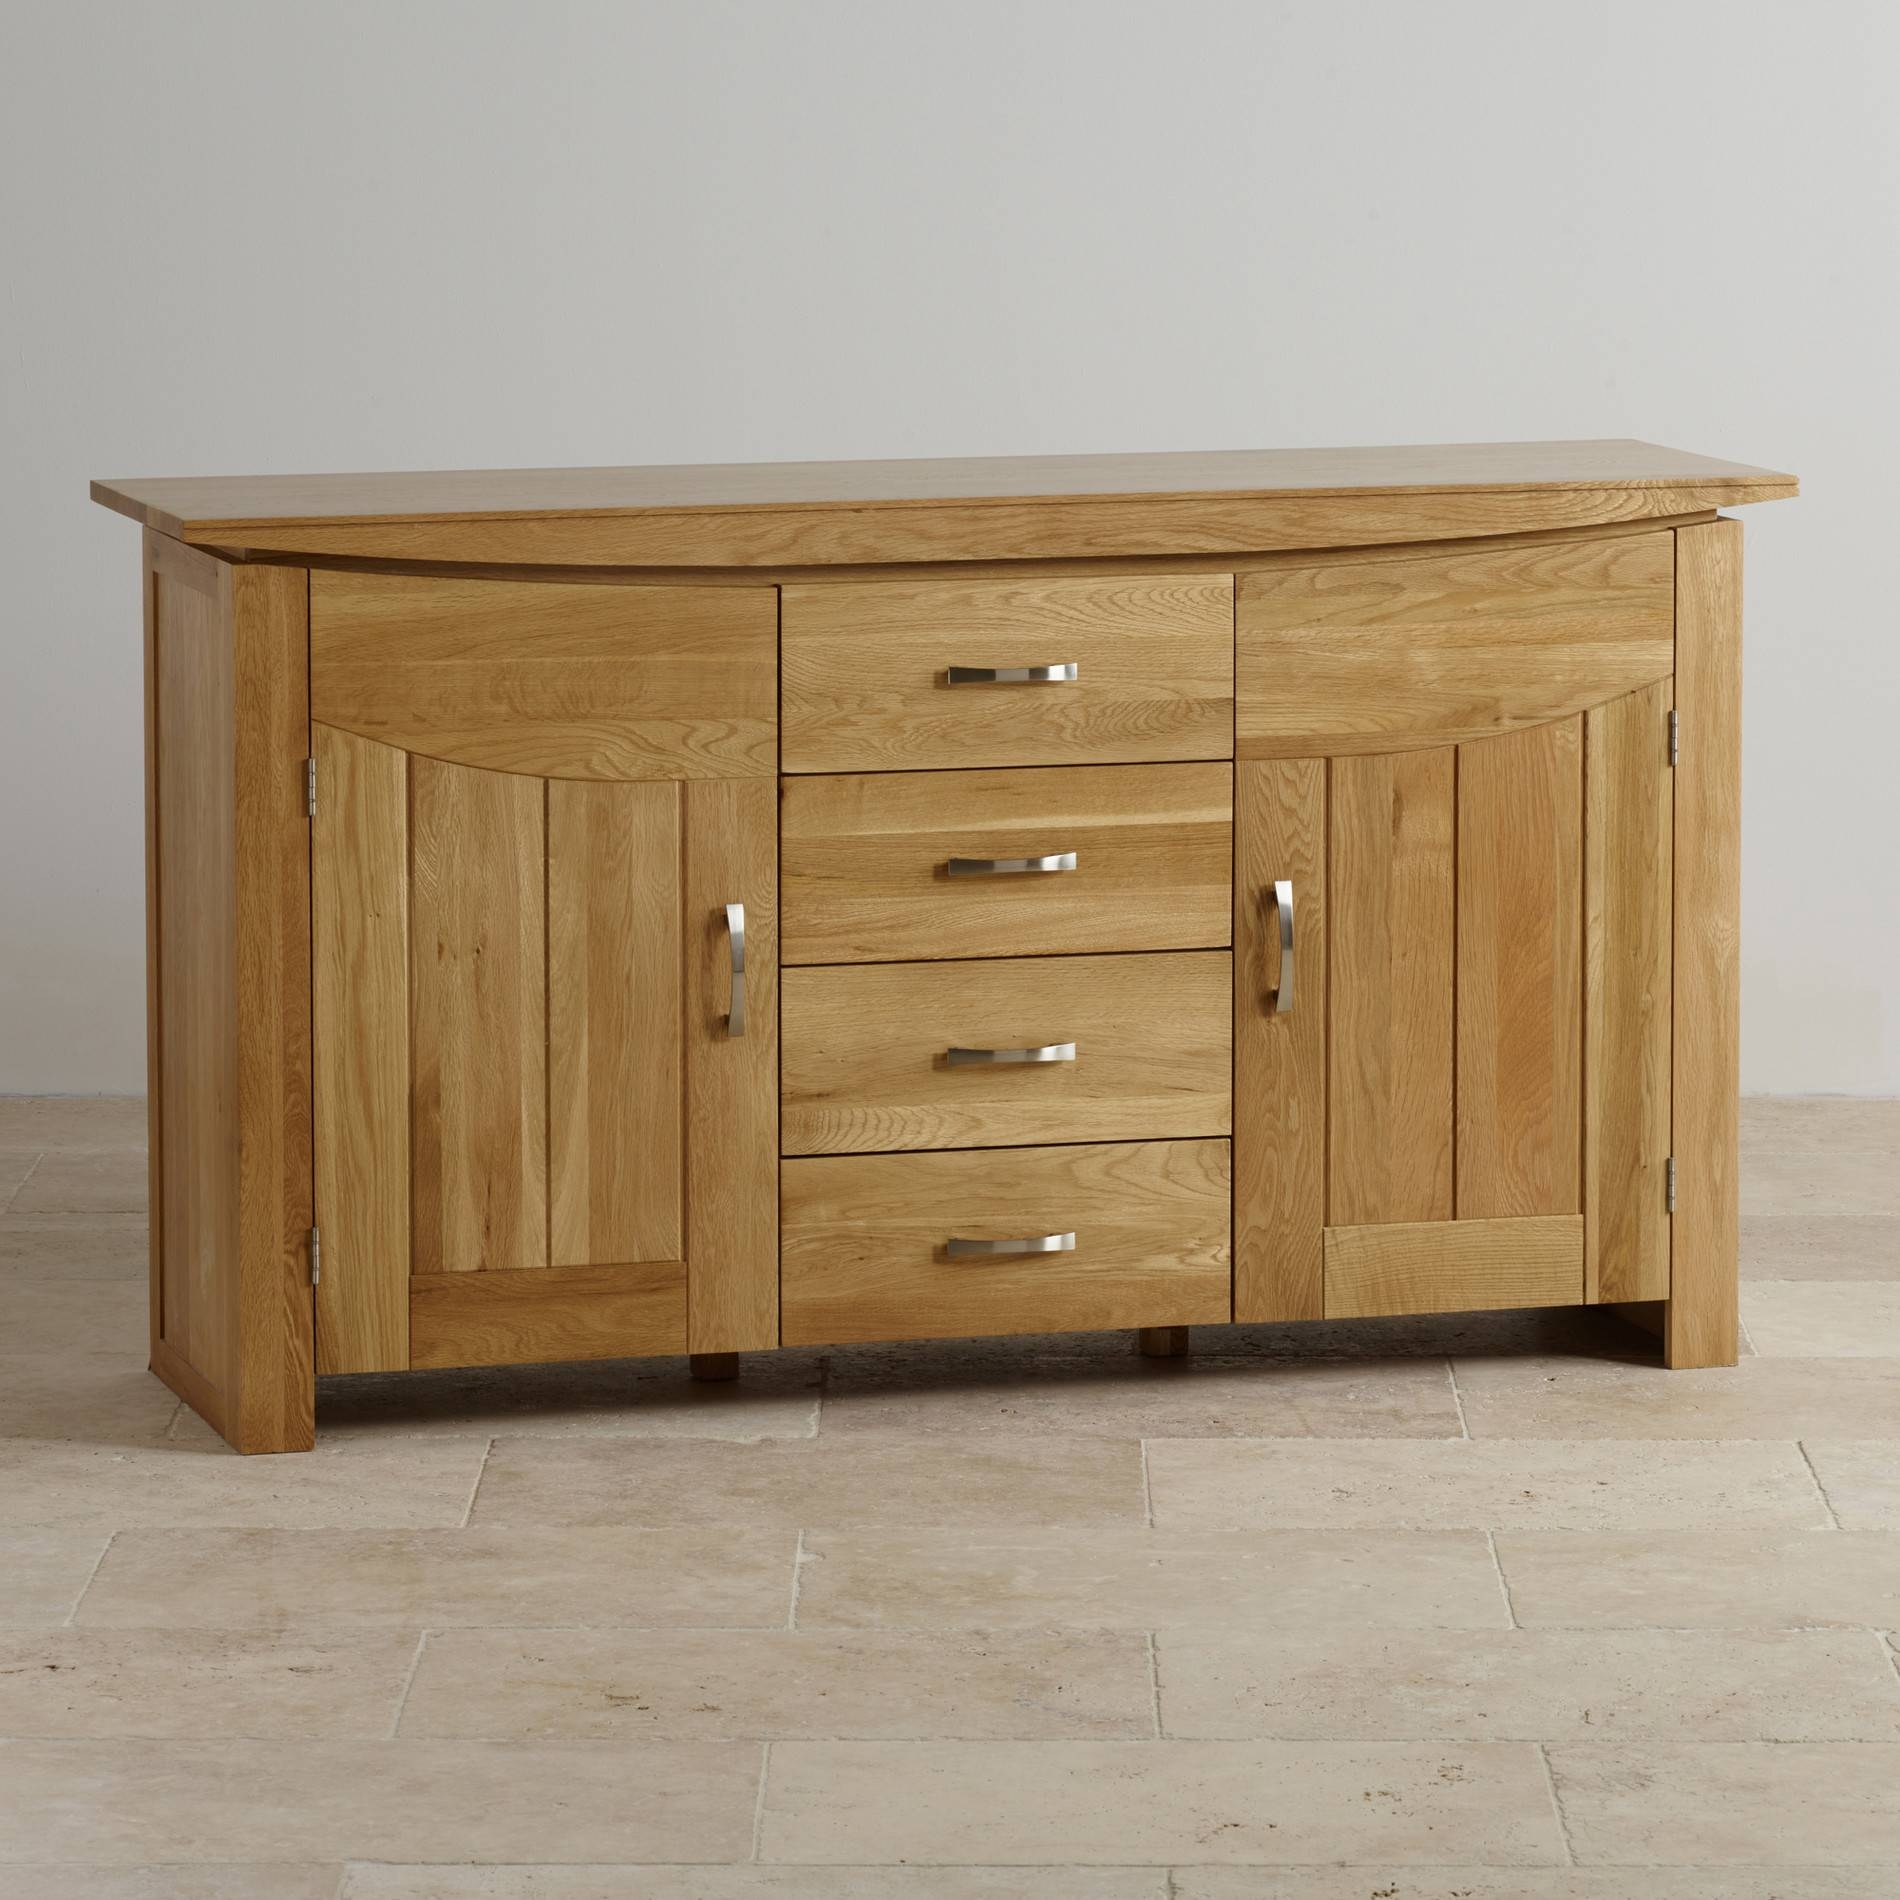 Tokyo Large Sideboard In Natural Solid Oak | Oak Furniture Land intended for Large Oak Wardrobes (Image 12 of 15)